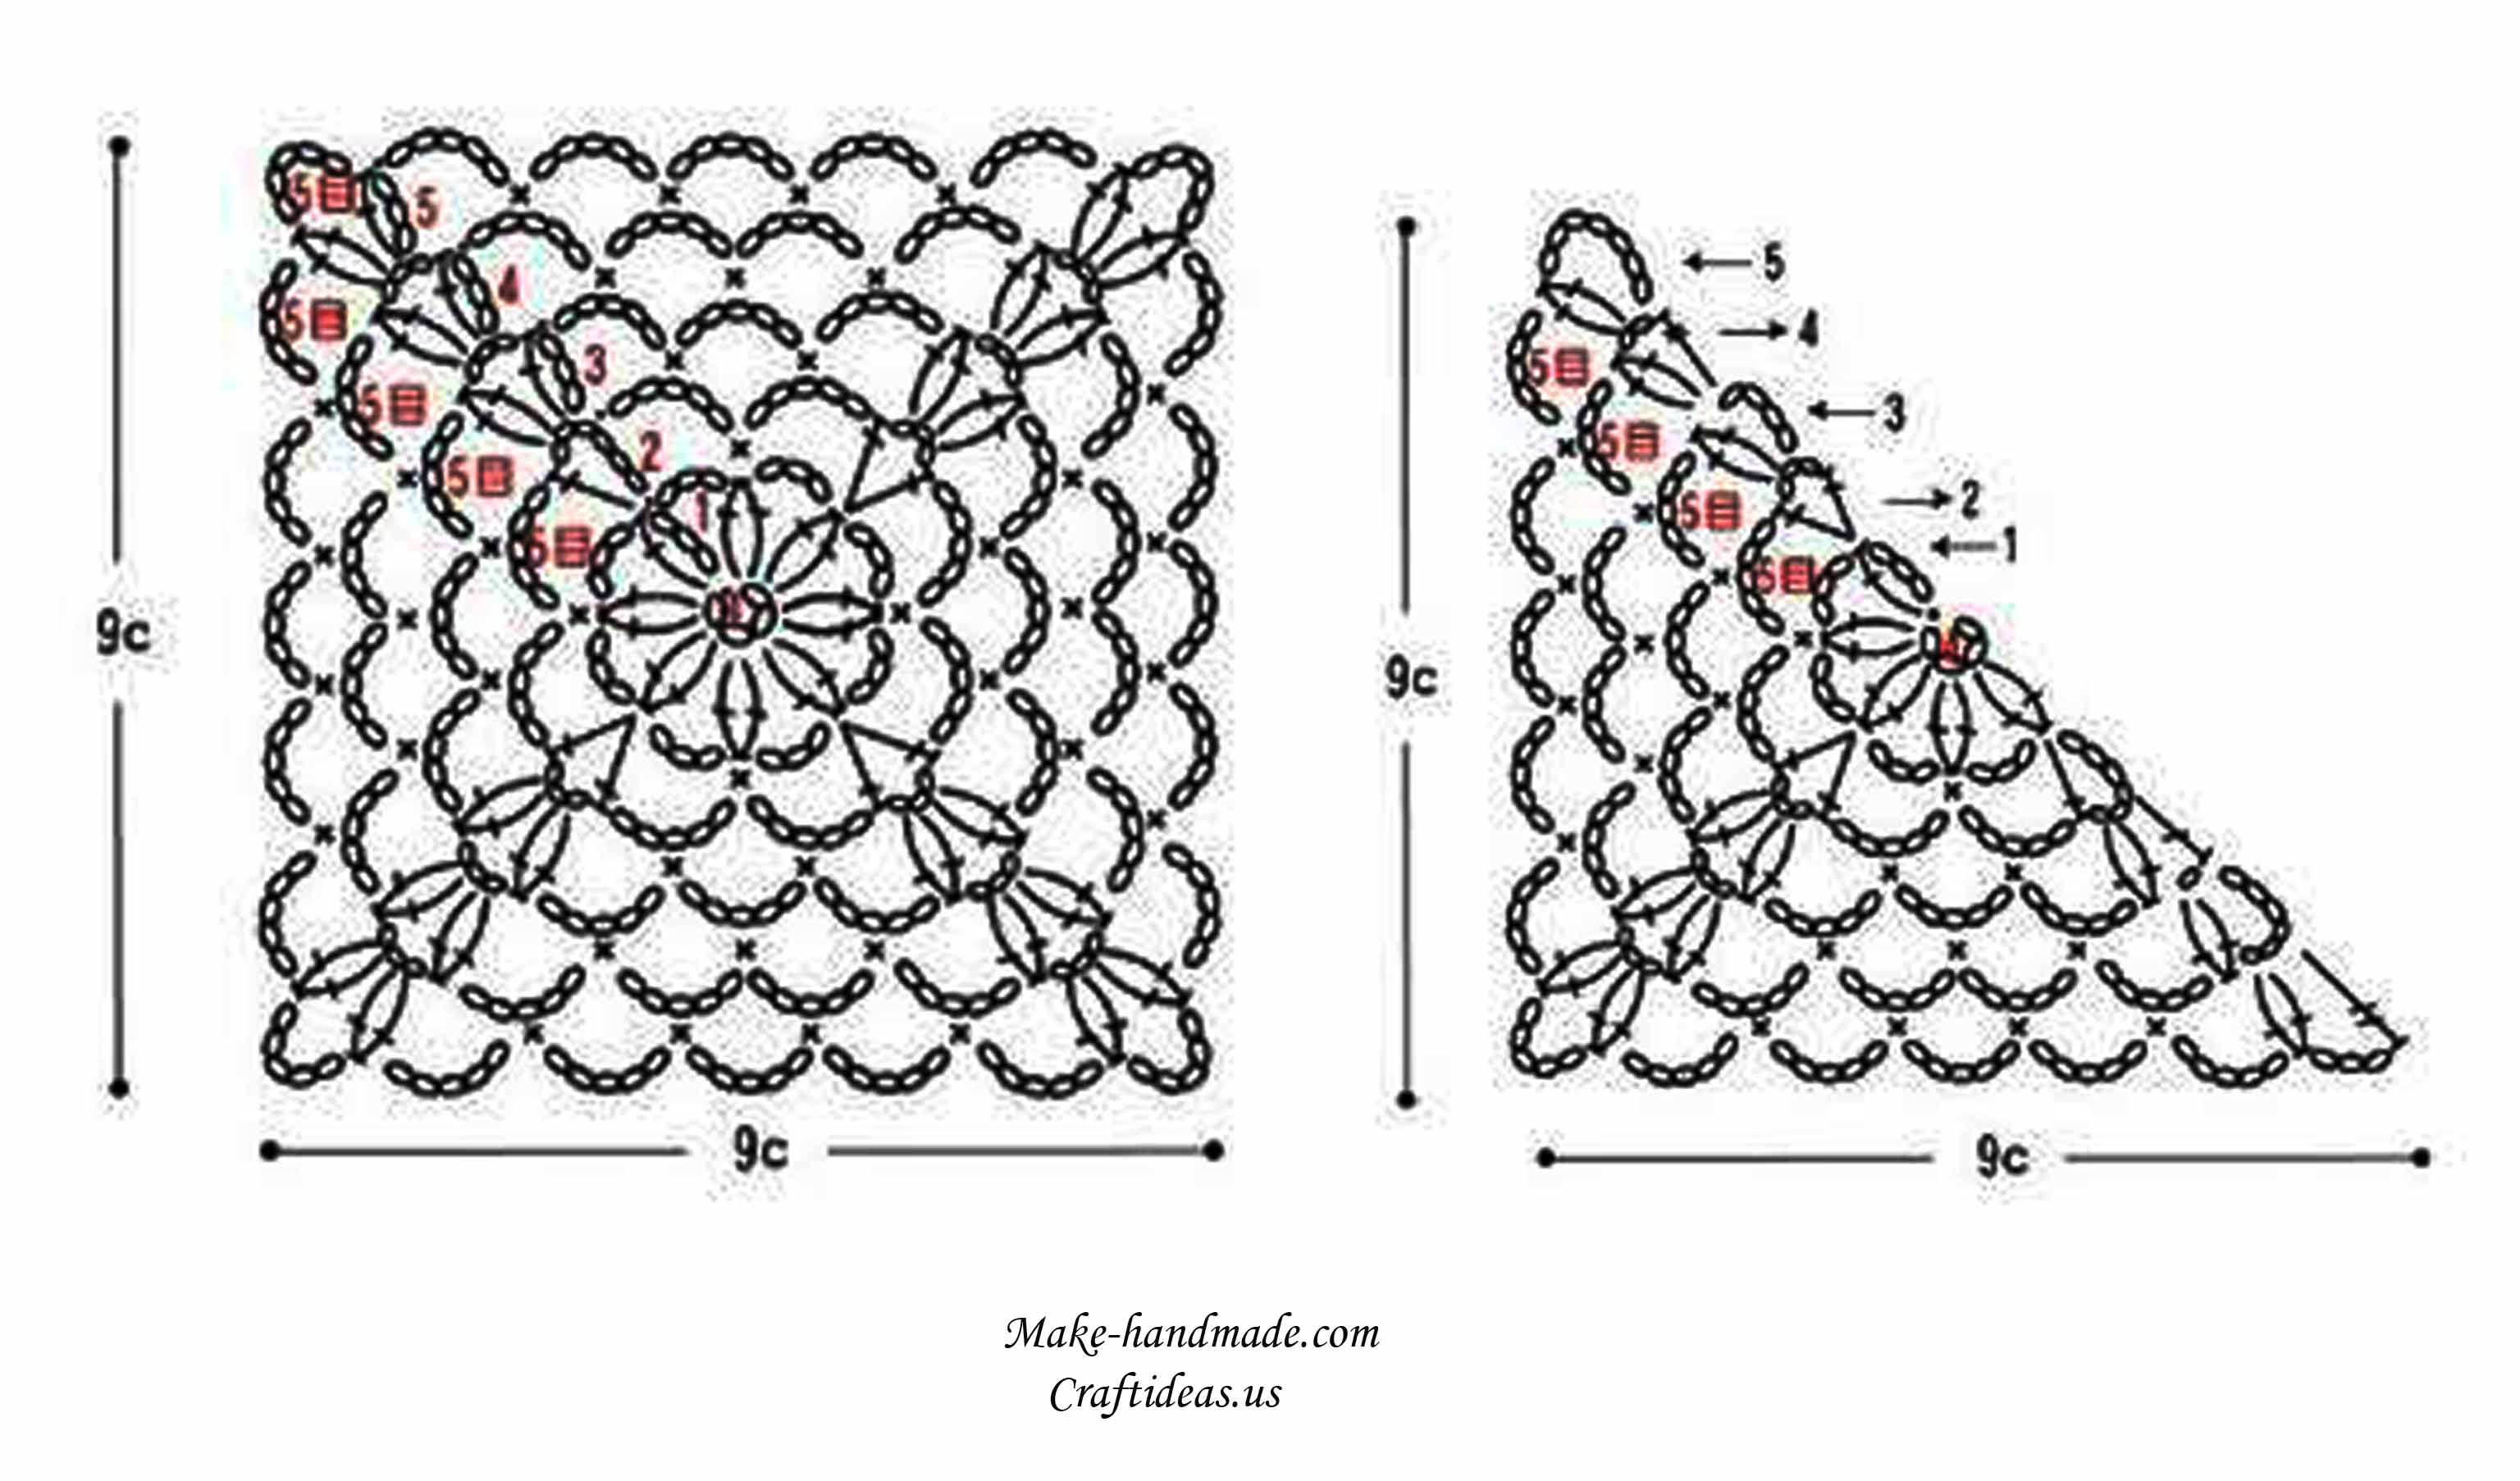 Crochet Diagram : Free Filet Crochet Heart Pattern besides Crochet Heart Pattern Diagram ...